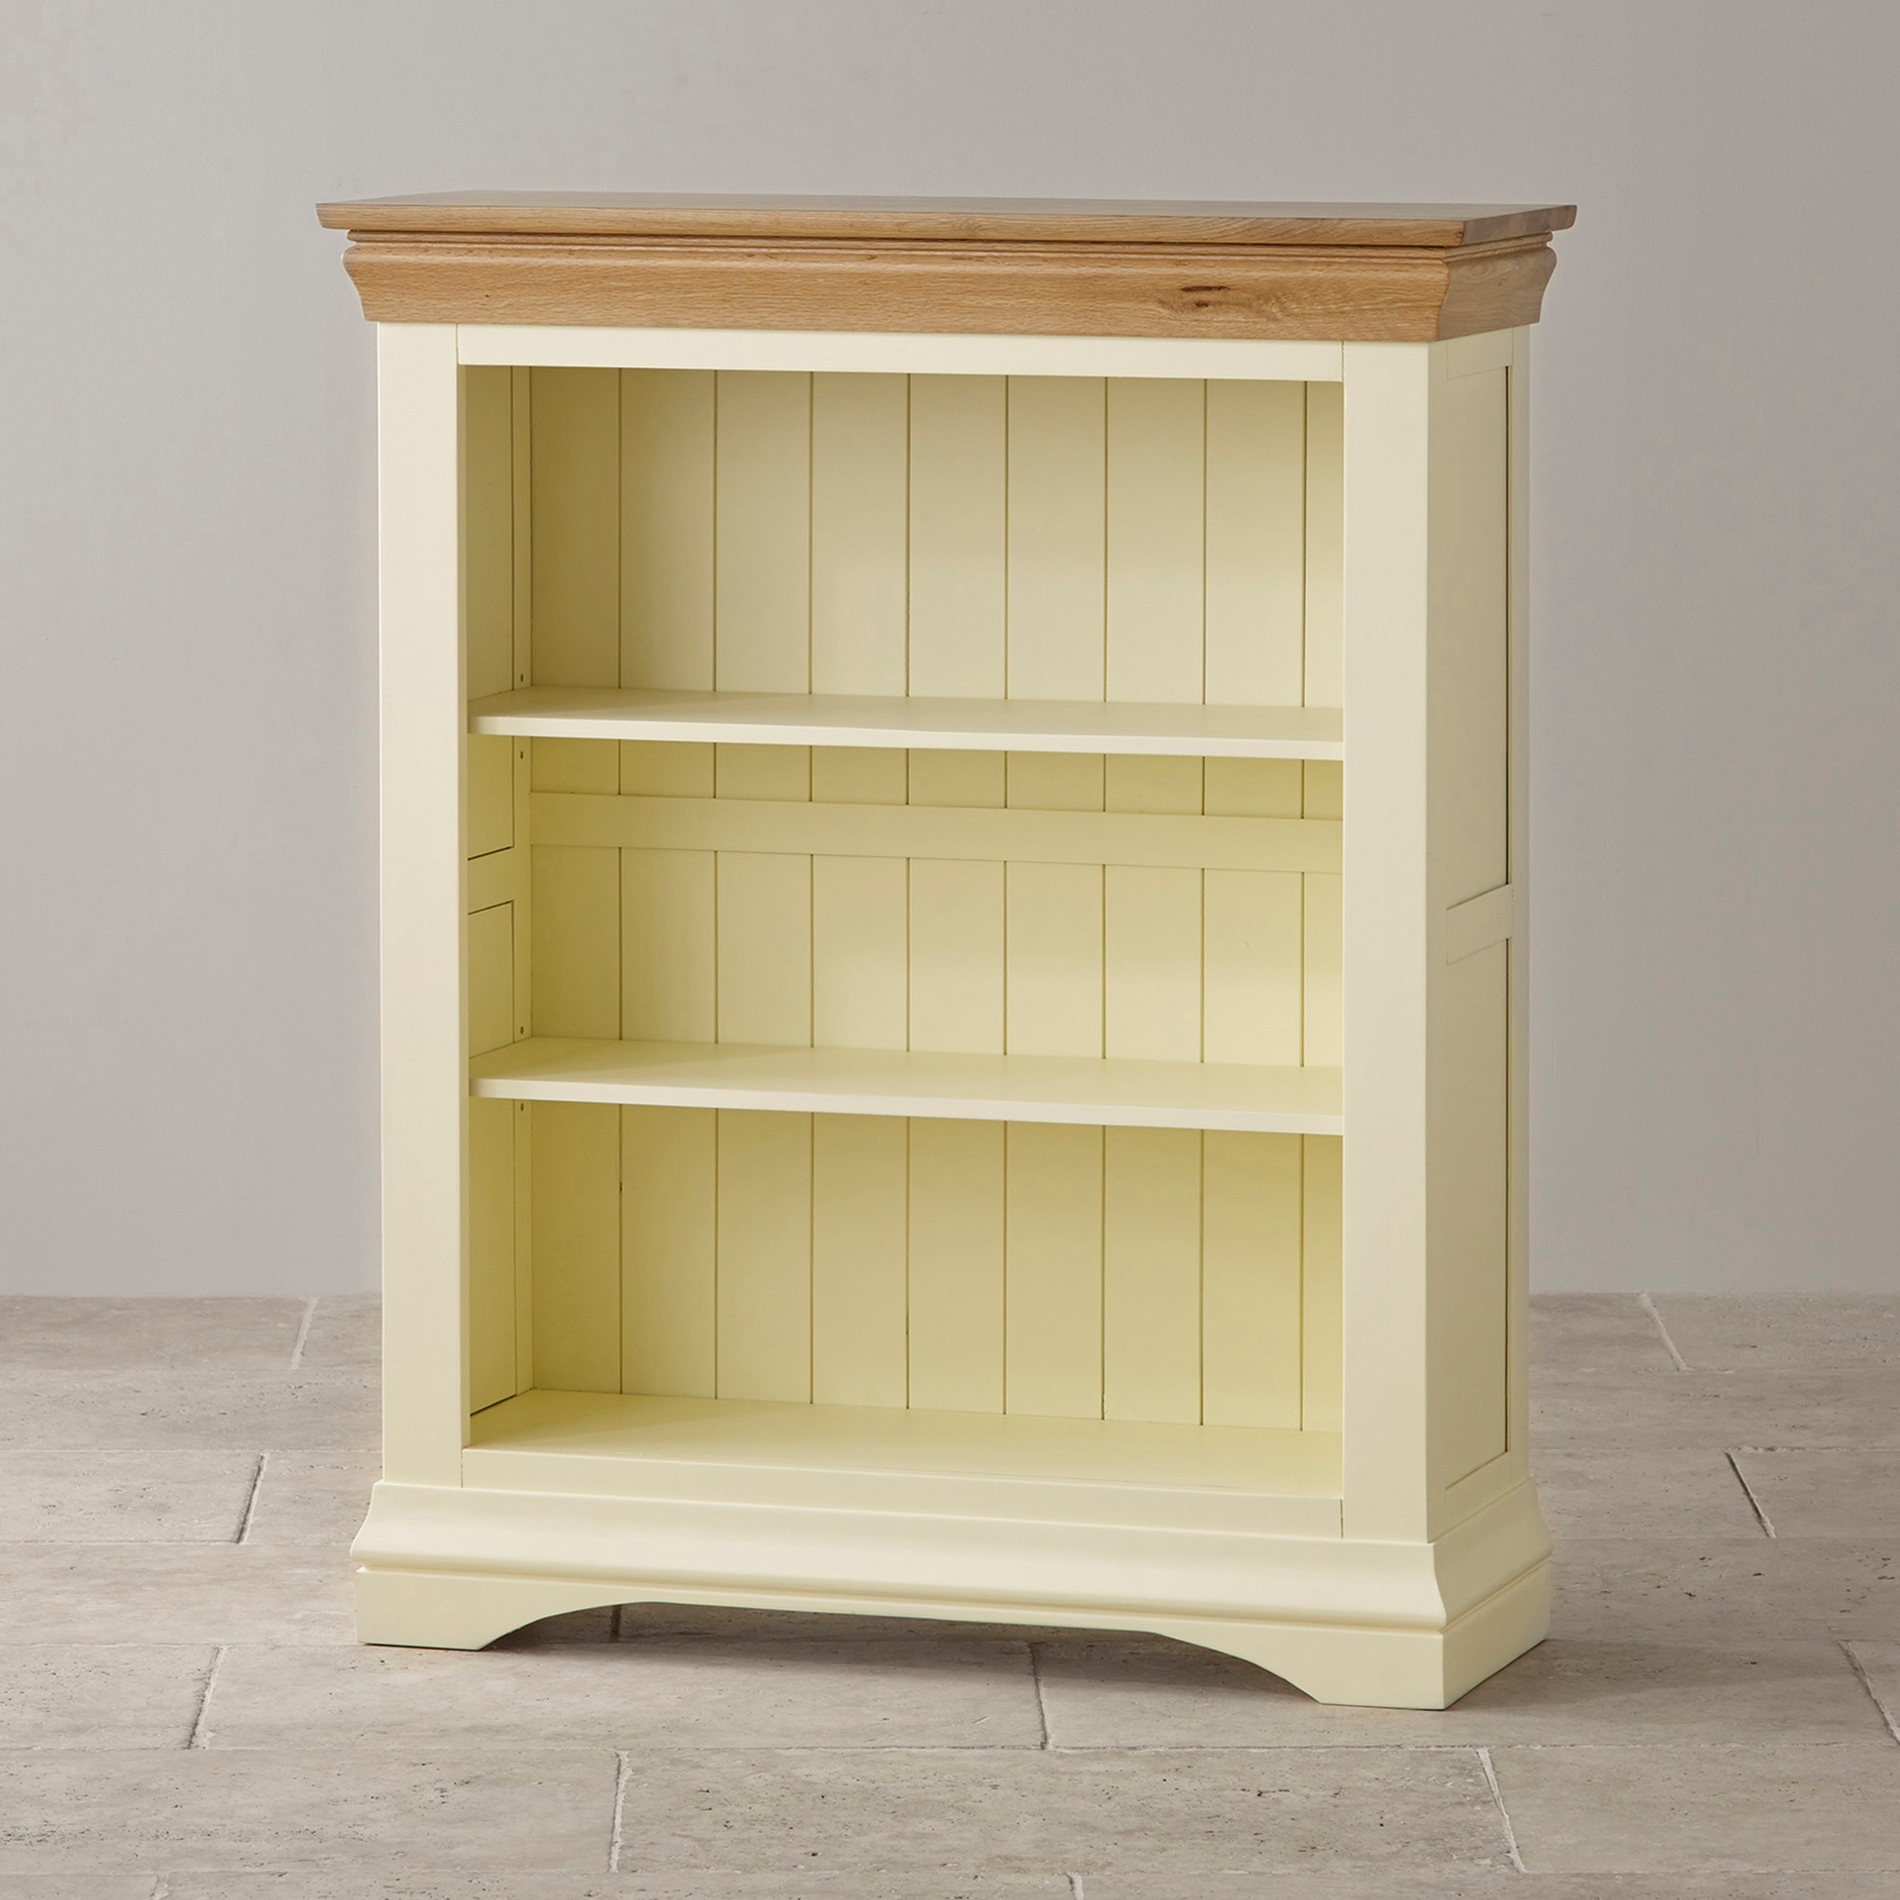 Country Cottage Small Painted Bookcase In Solid Oak Intended For 2017 Painted Wood Bookcases (View 12 of 15)